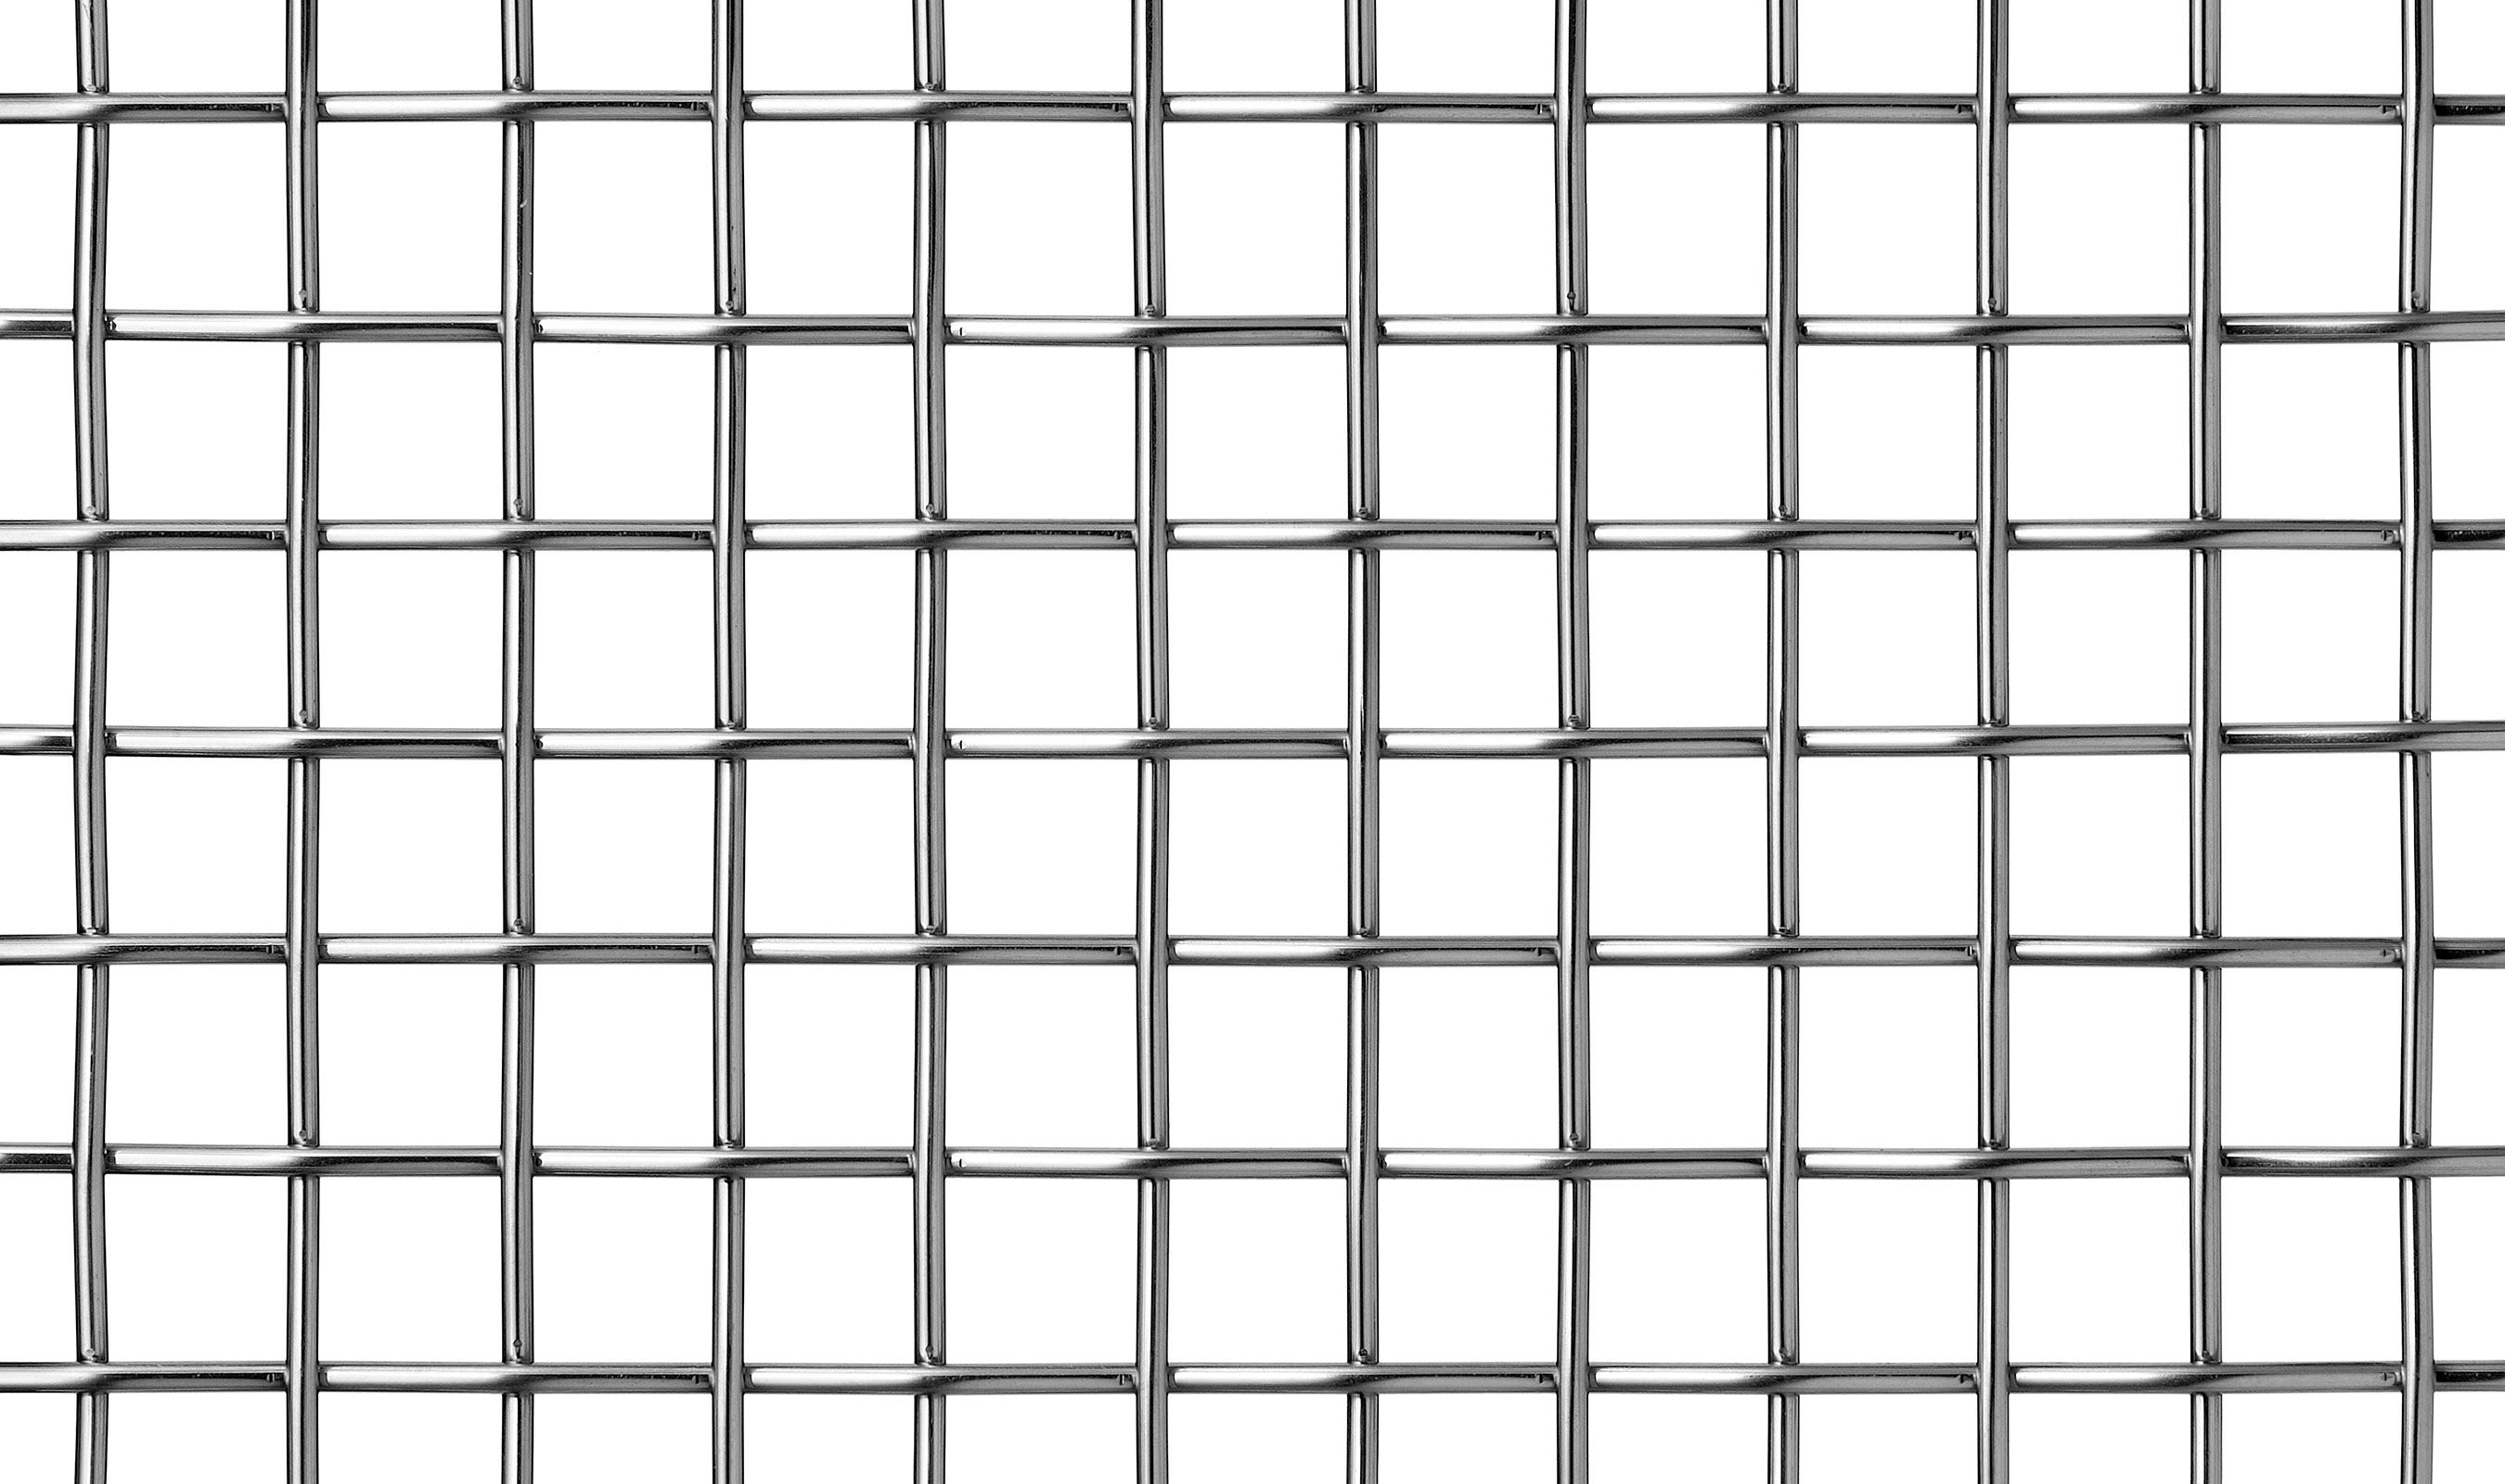 P-278 in Stainless Woven Wire Mesh